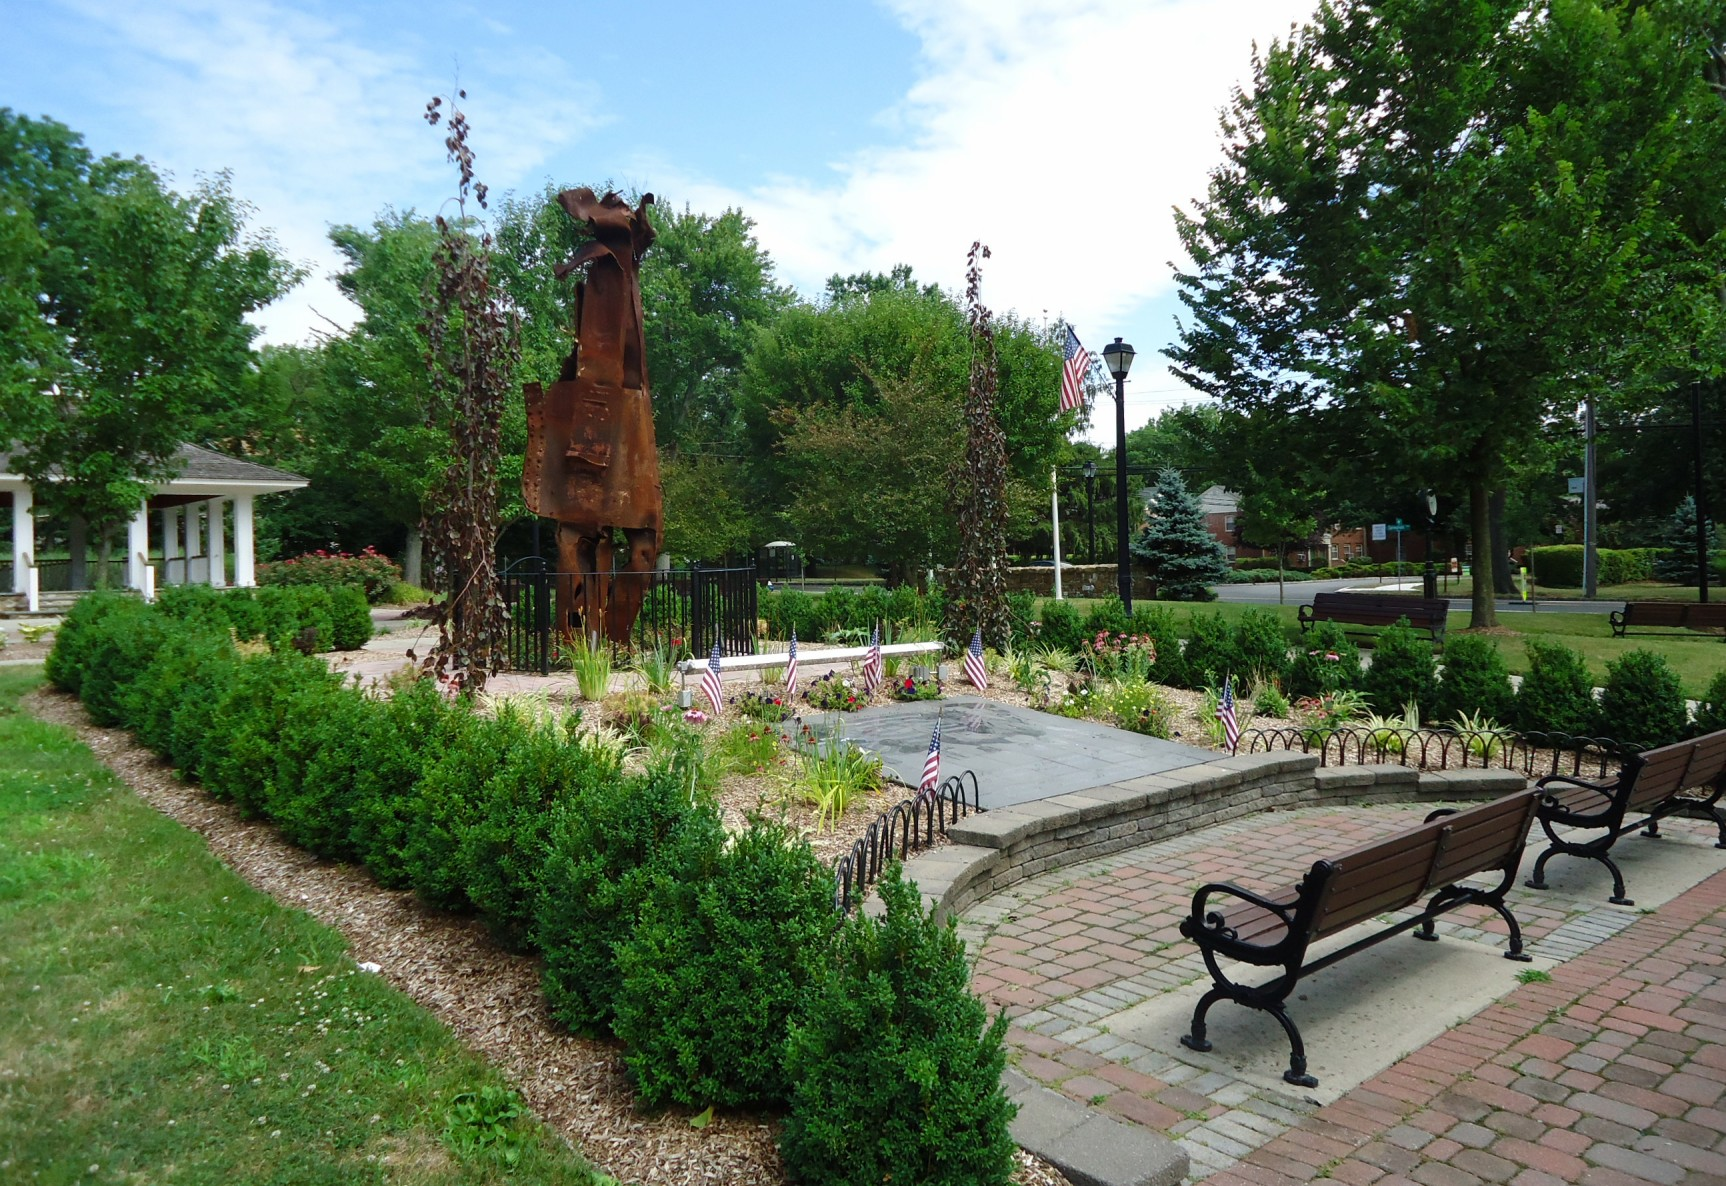 File:New Providence NJ public park with pergola and benches.jpg - Wikimedia Commons